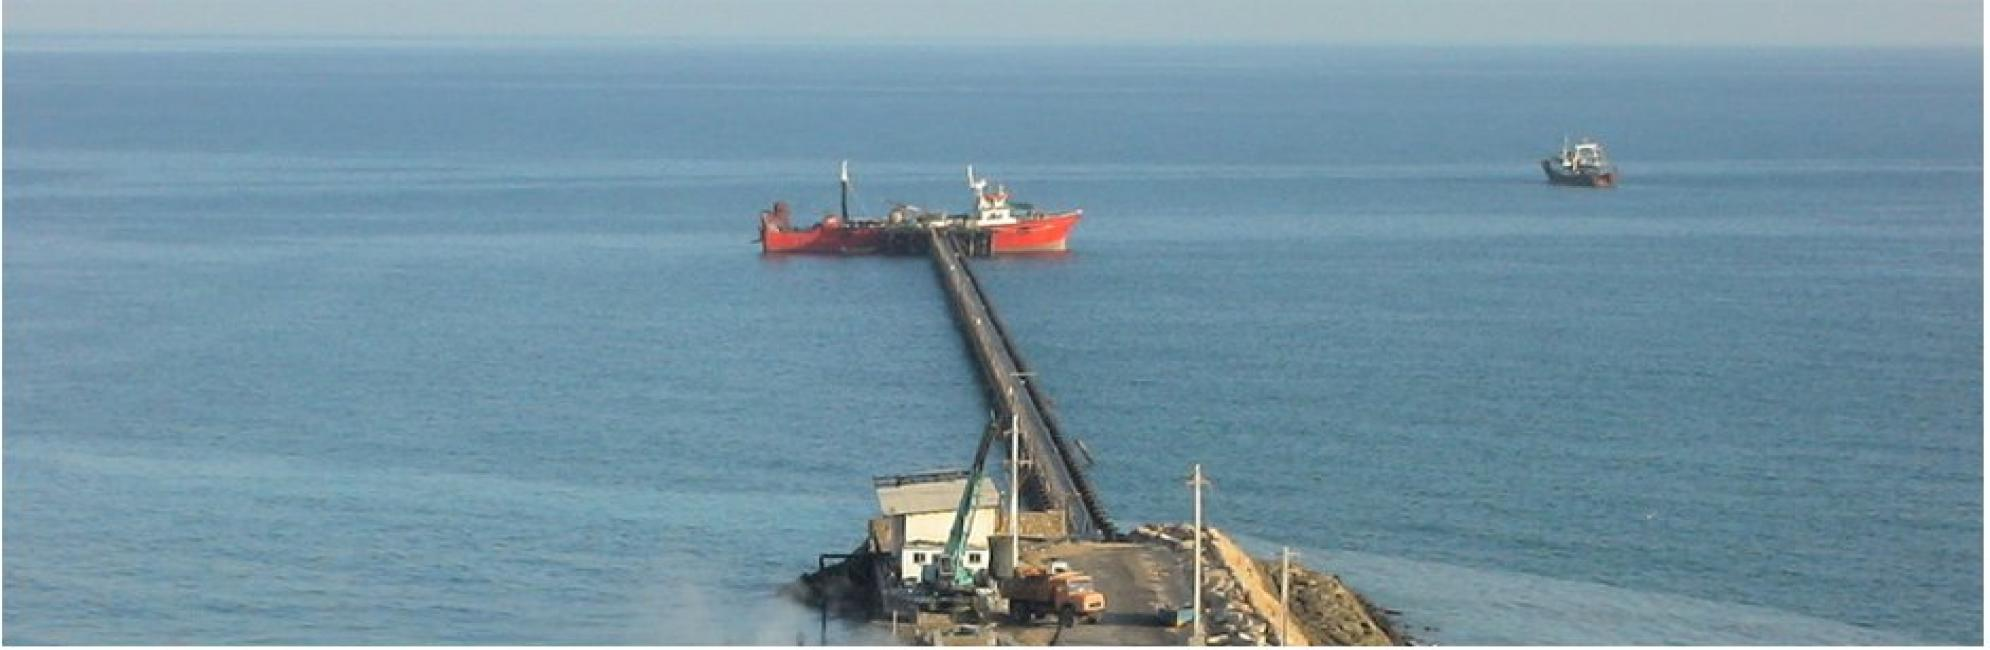 QFPCO 1000m long Jetty, Qeshm Island